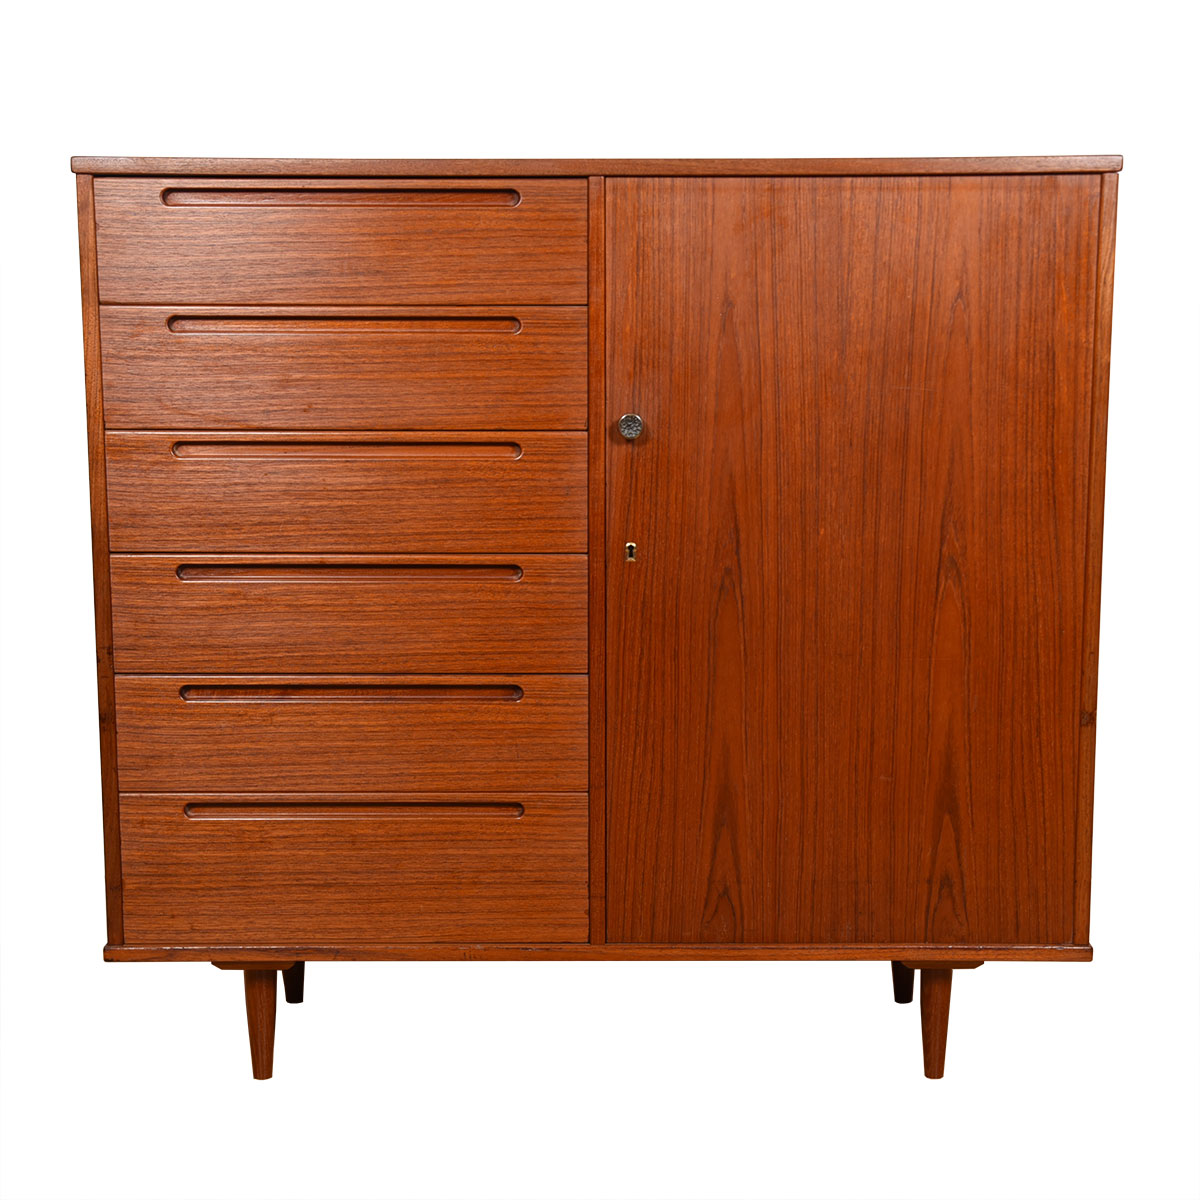 Danish Modern Teak Gentleman's Chest / Chest of Drawers